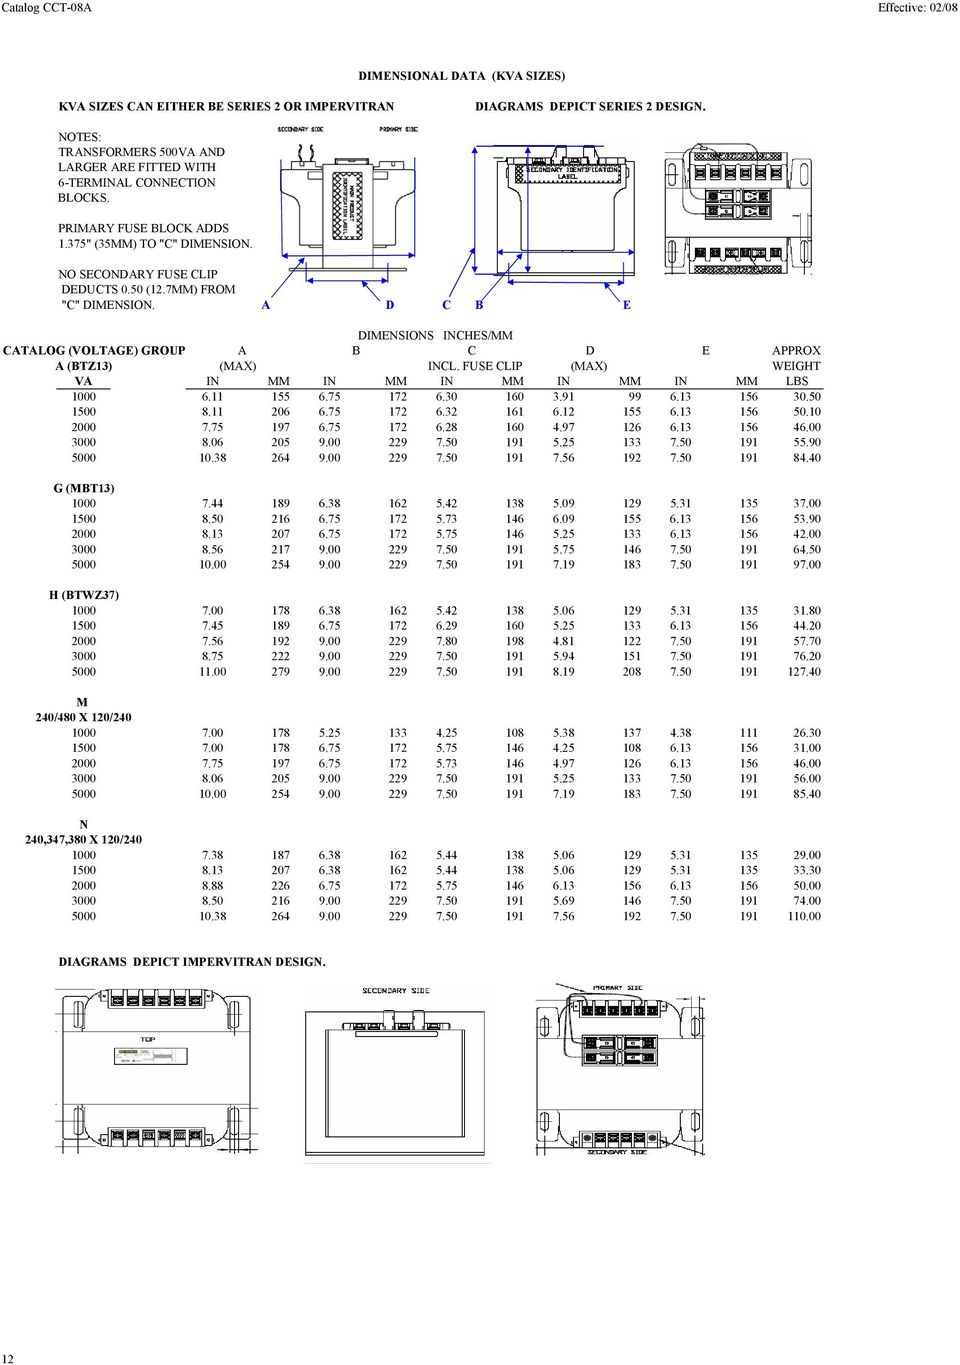 Transformer Selection Process Determining Inrush And Voltage Relay Wiring Diagram 90 380 Heavy Duty A D C B E Dimensions Inches Mm Catalog Group Approx Btz13